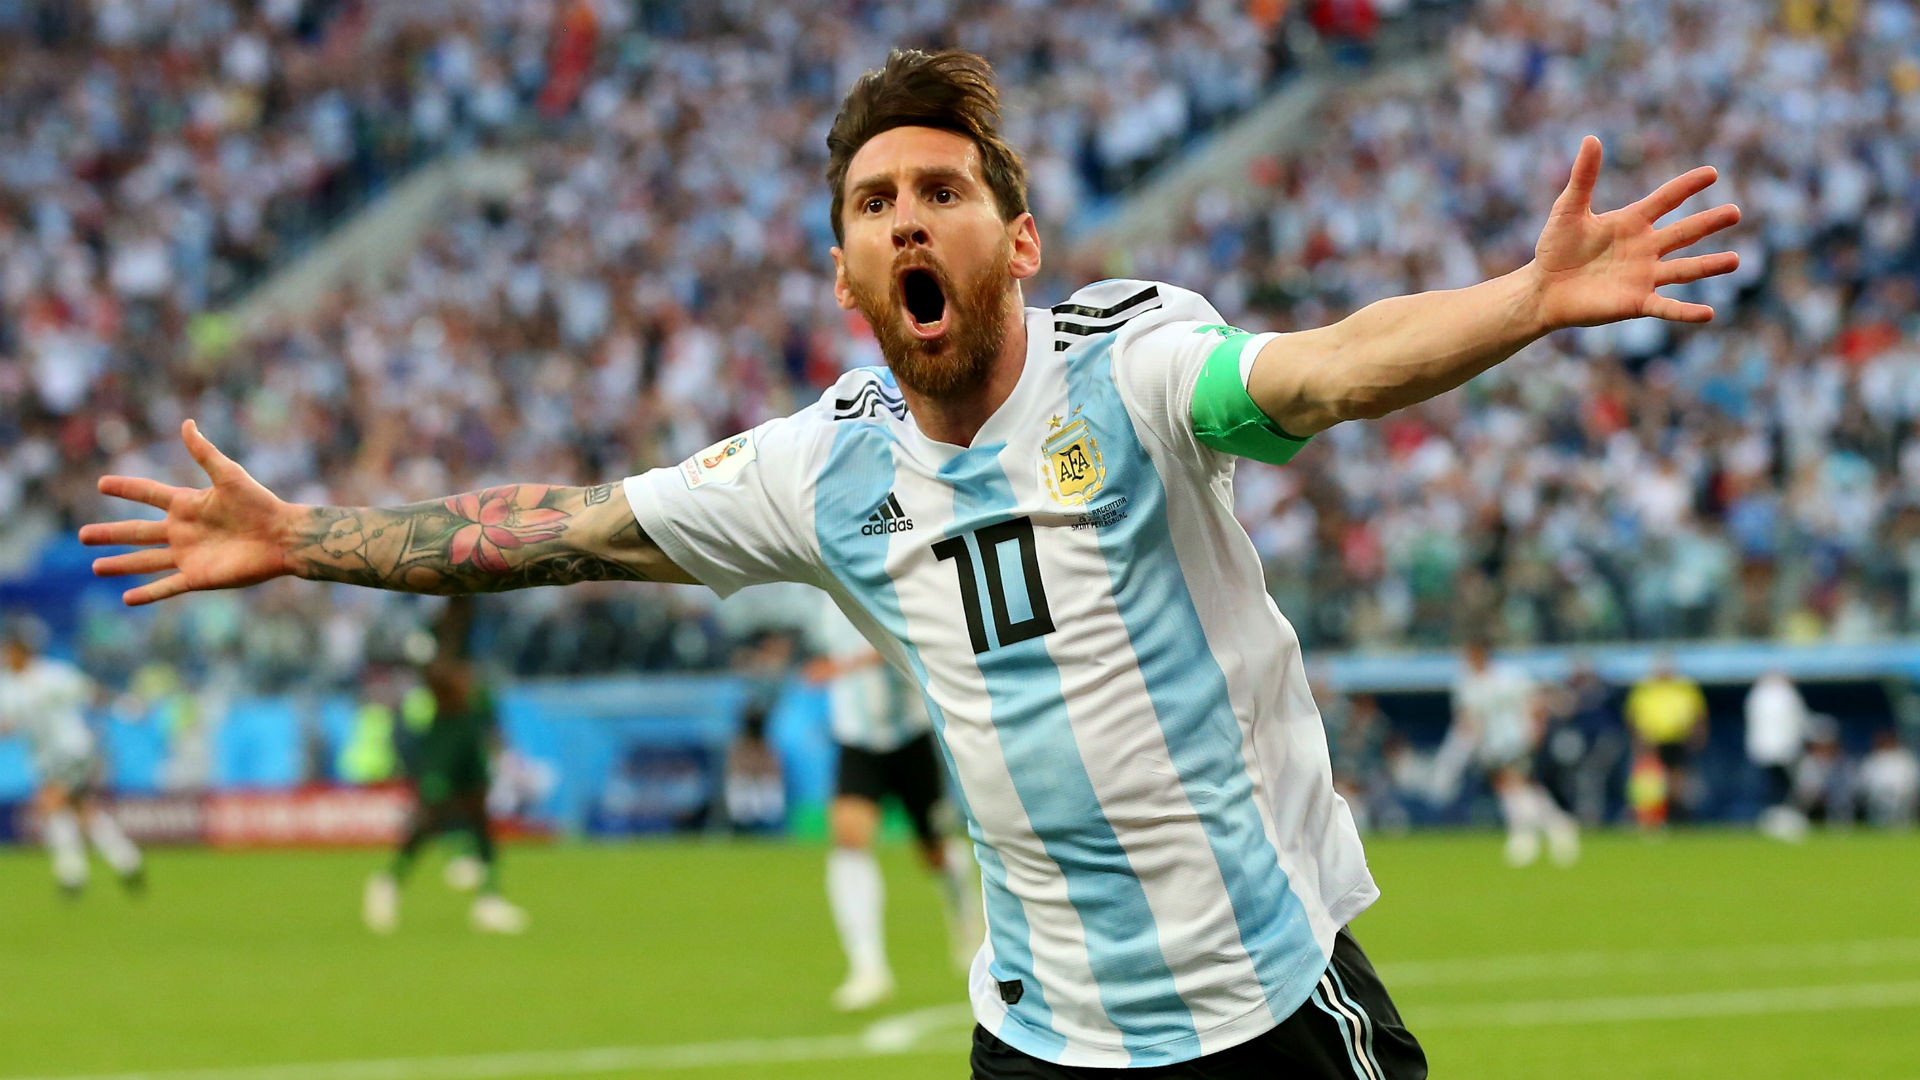 'Musa's done more than Messi' - Nigeria goal hero hands Argentina lifeline